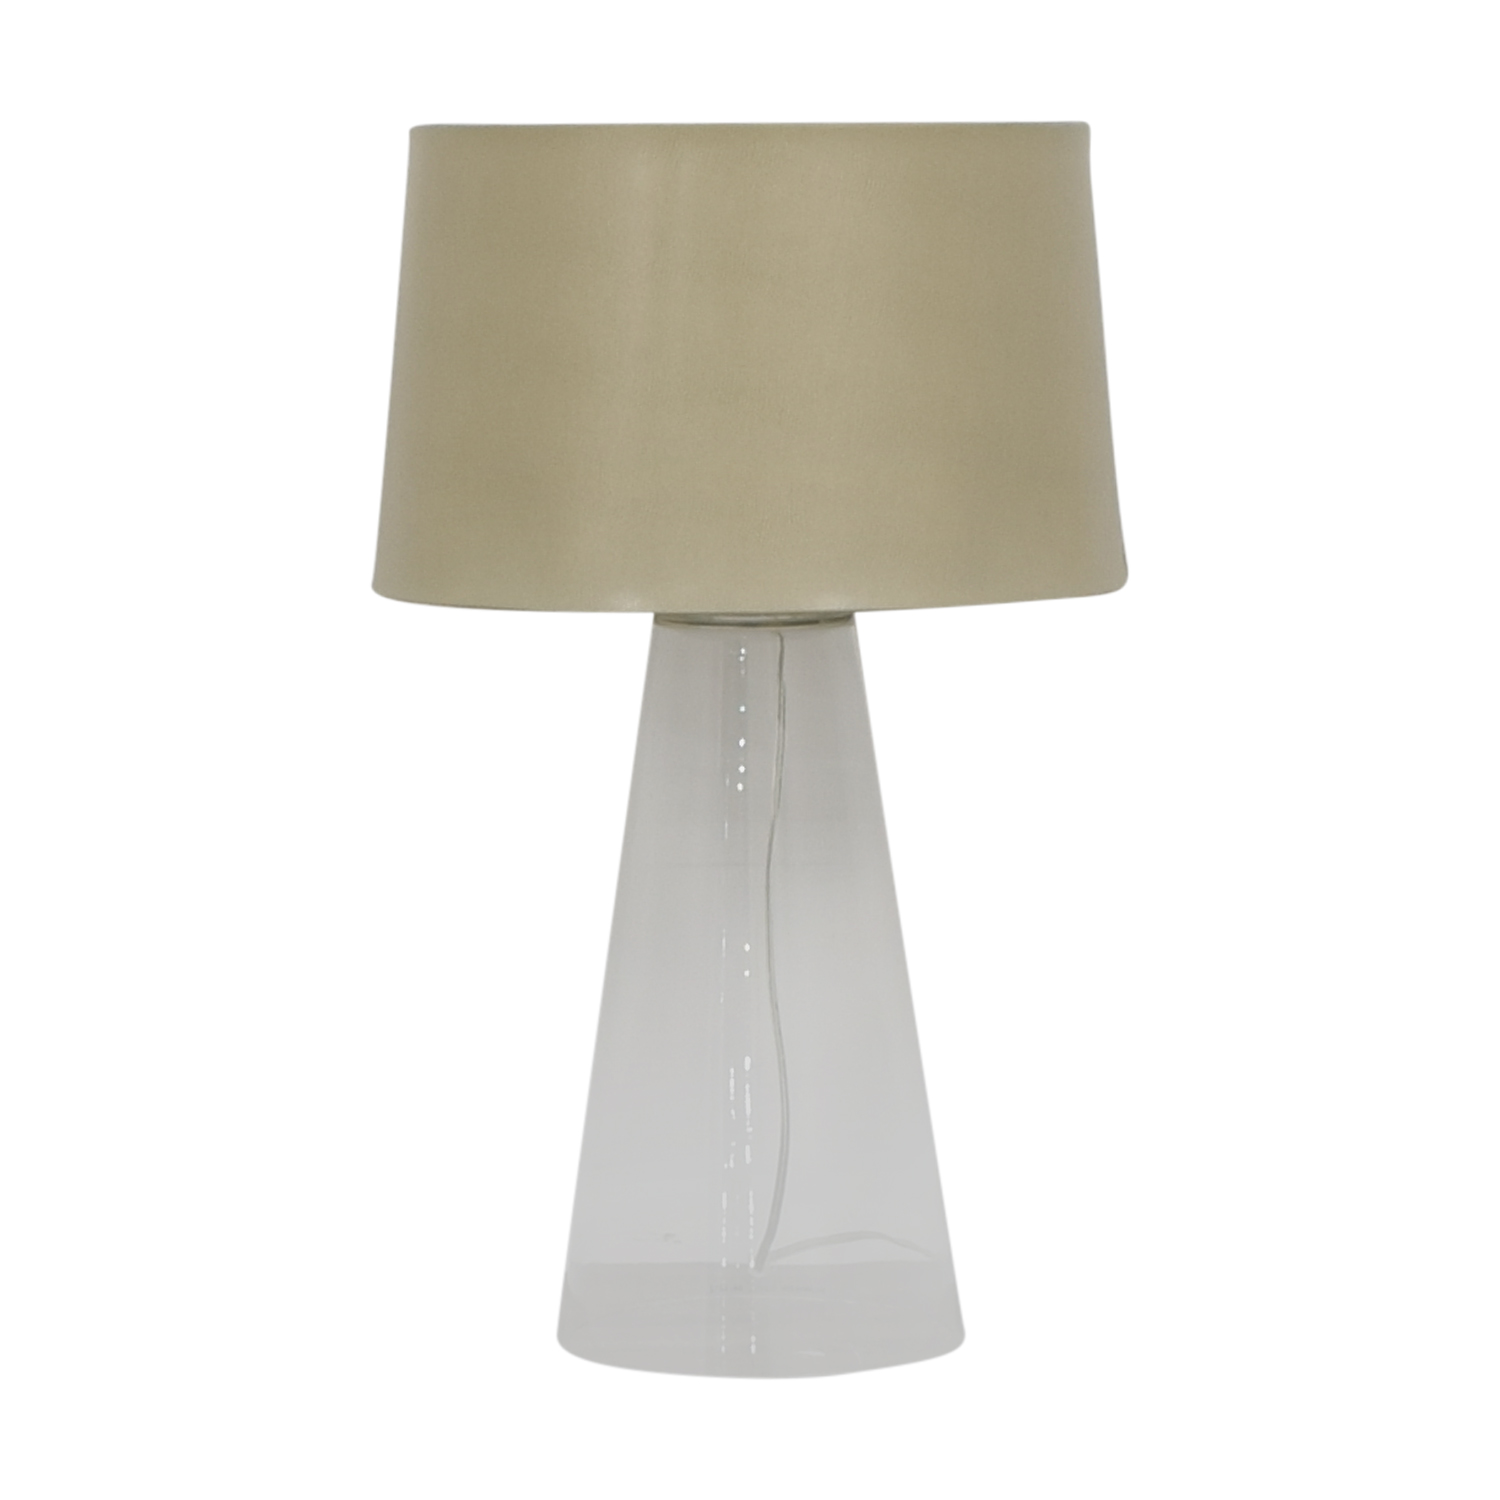 Crate & Barrel Crate & Barrel Table Lamp nyc